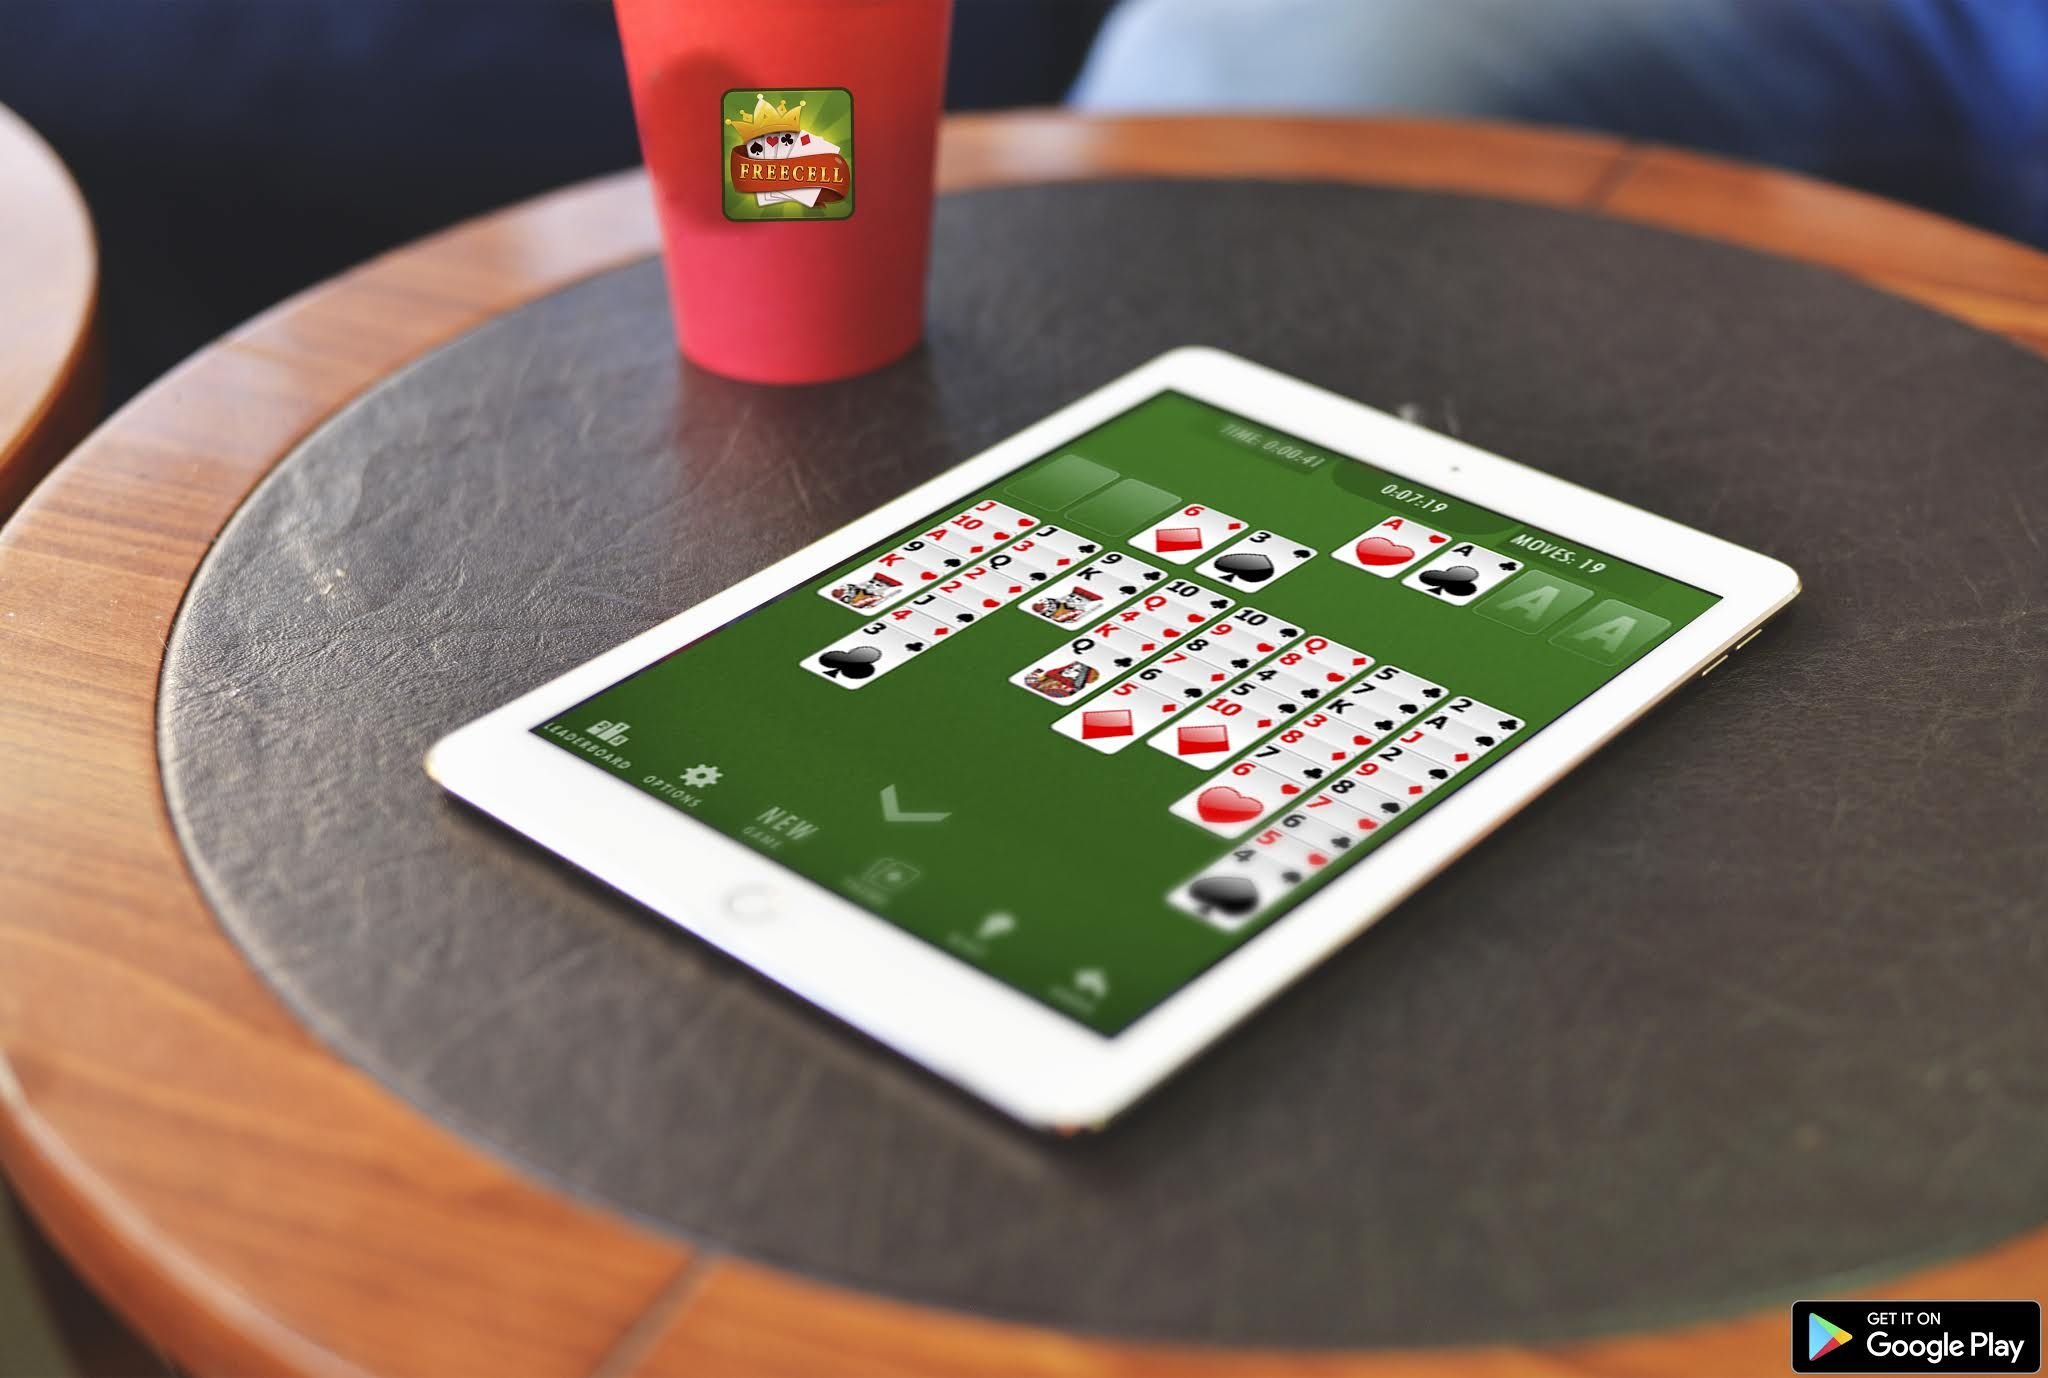 FreeCell Solitaire adds a new element of strategy to the